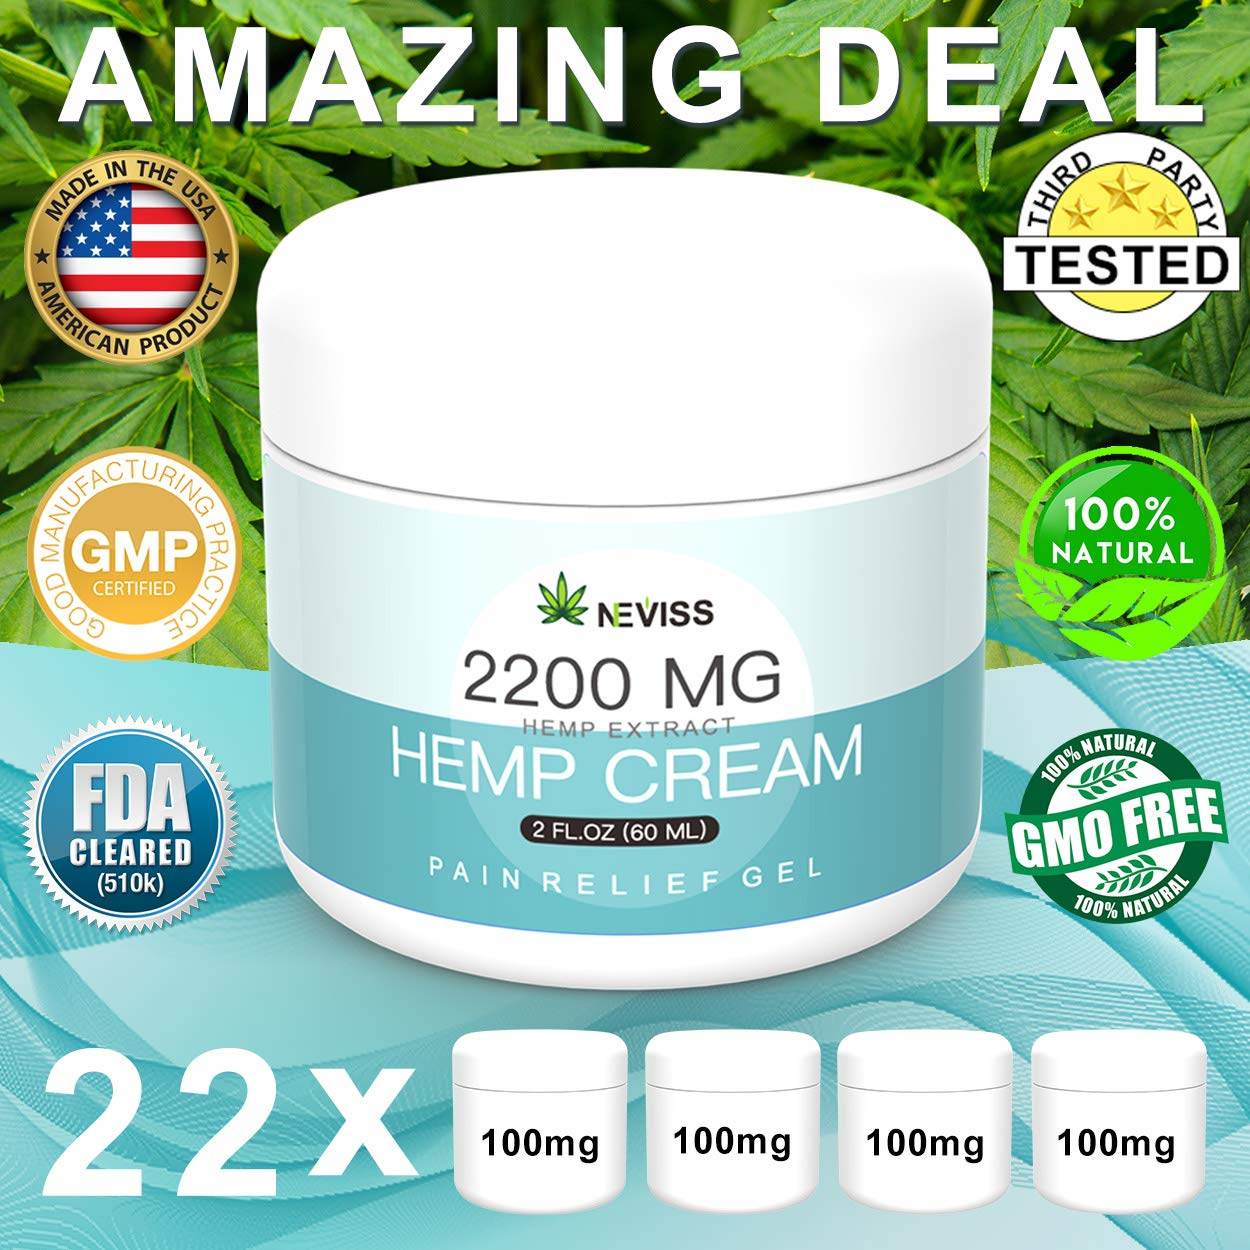 Pain Relief Hemp Cream 2200 MG, Natural Hemp Herbal Extract Cream for Neck Knee Joint Back Ankle Nerves Pain, Premium Hemp Cream for Inflammation & Sore Muscles - Made in USA